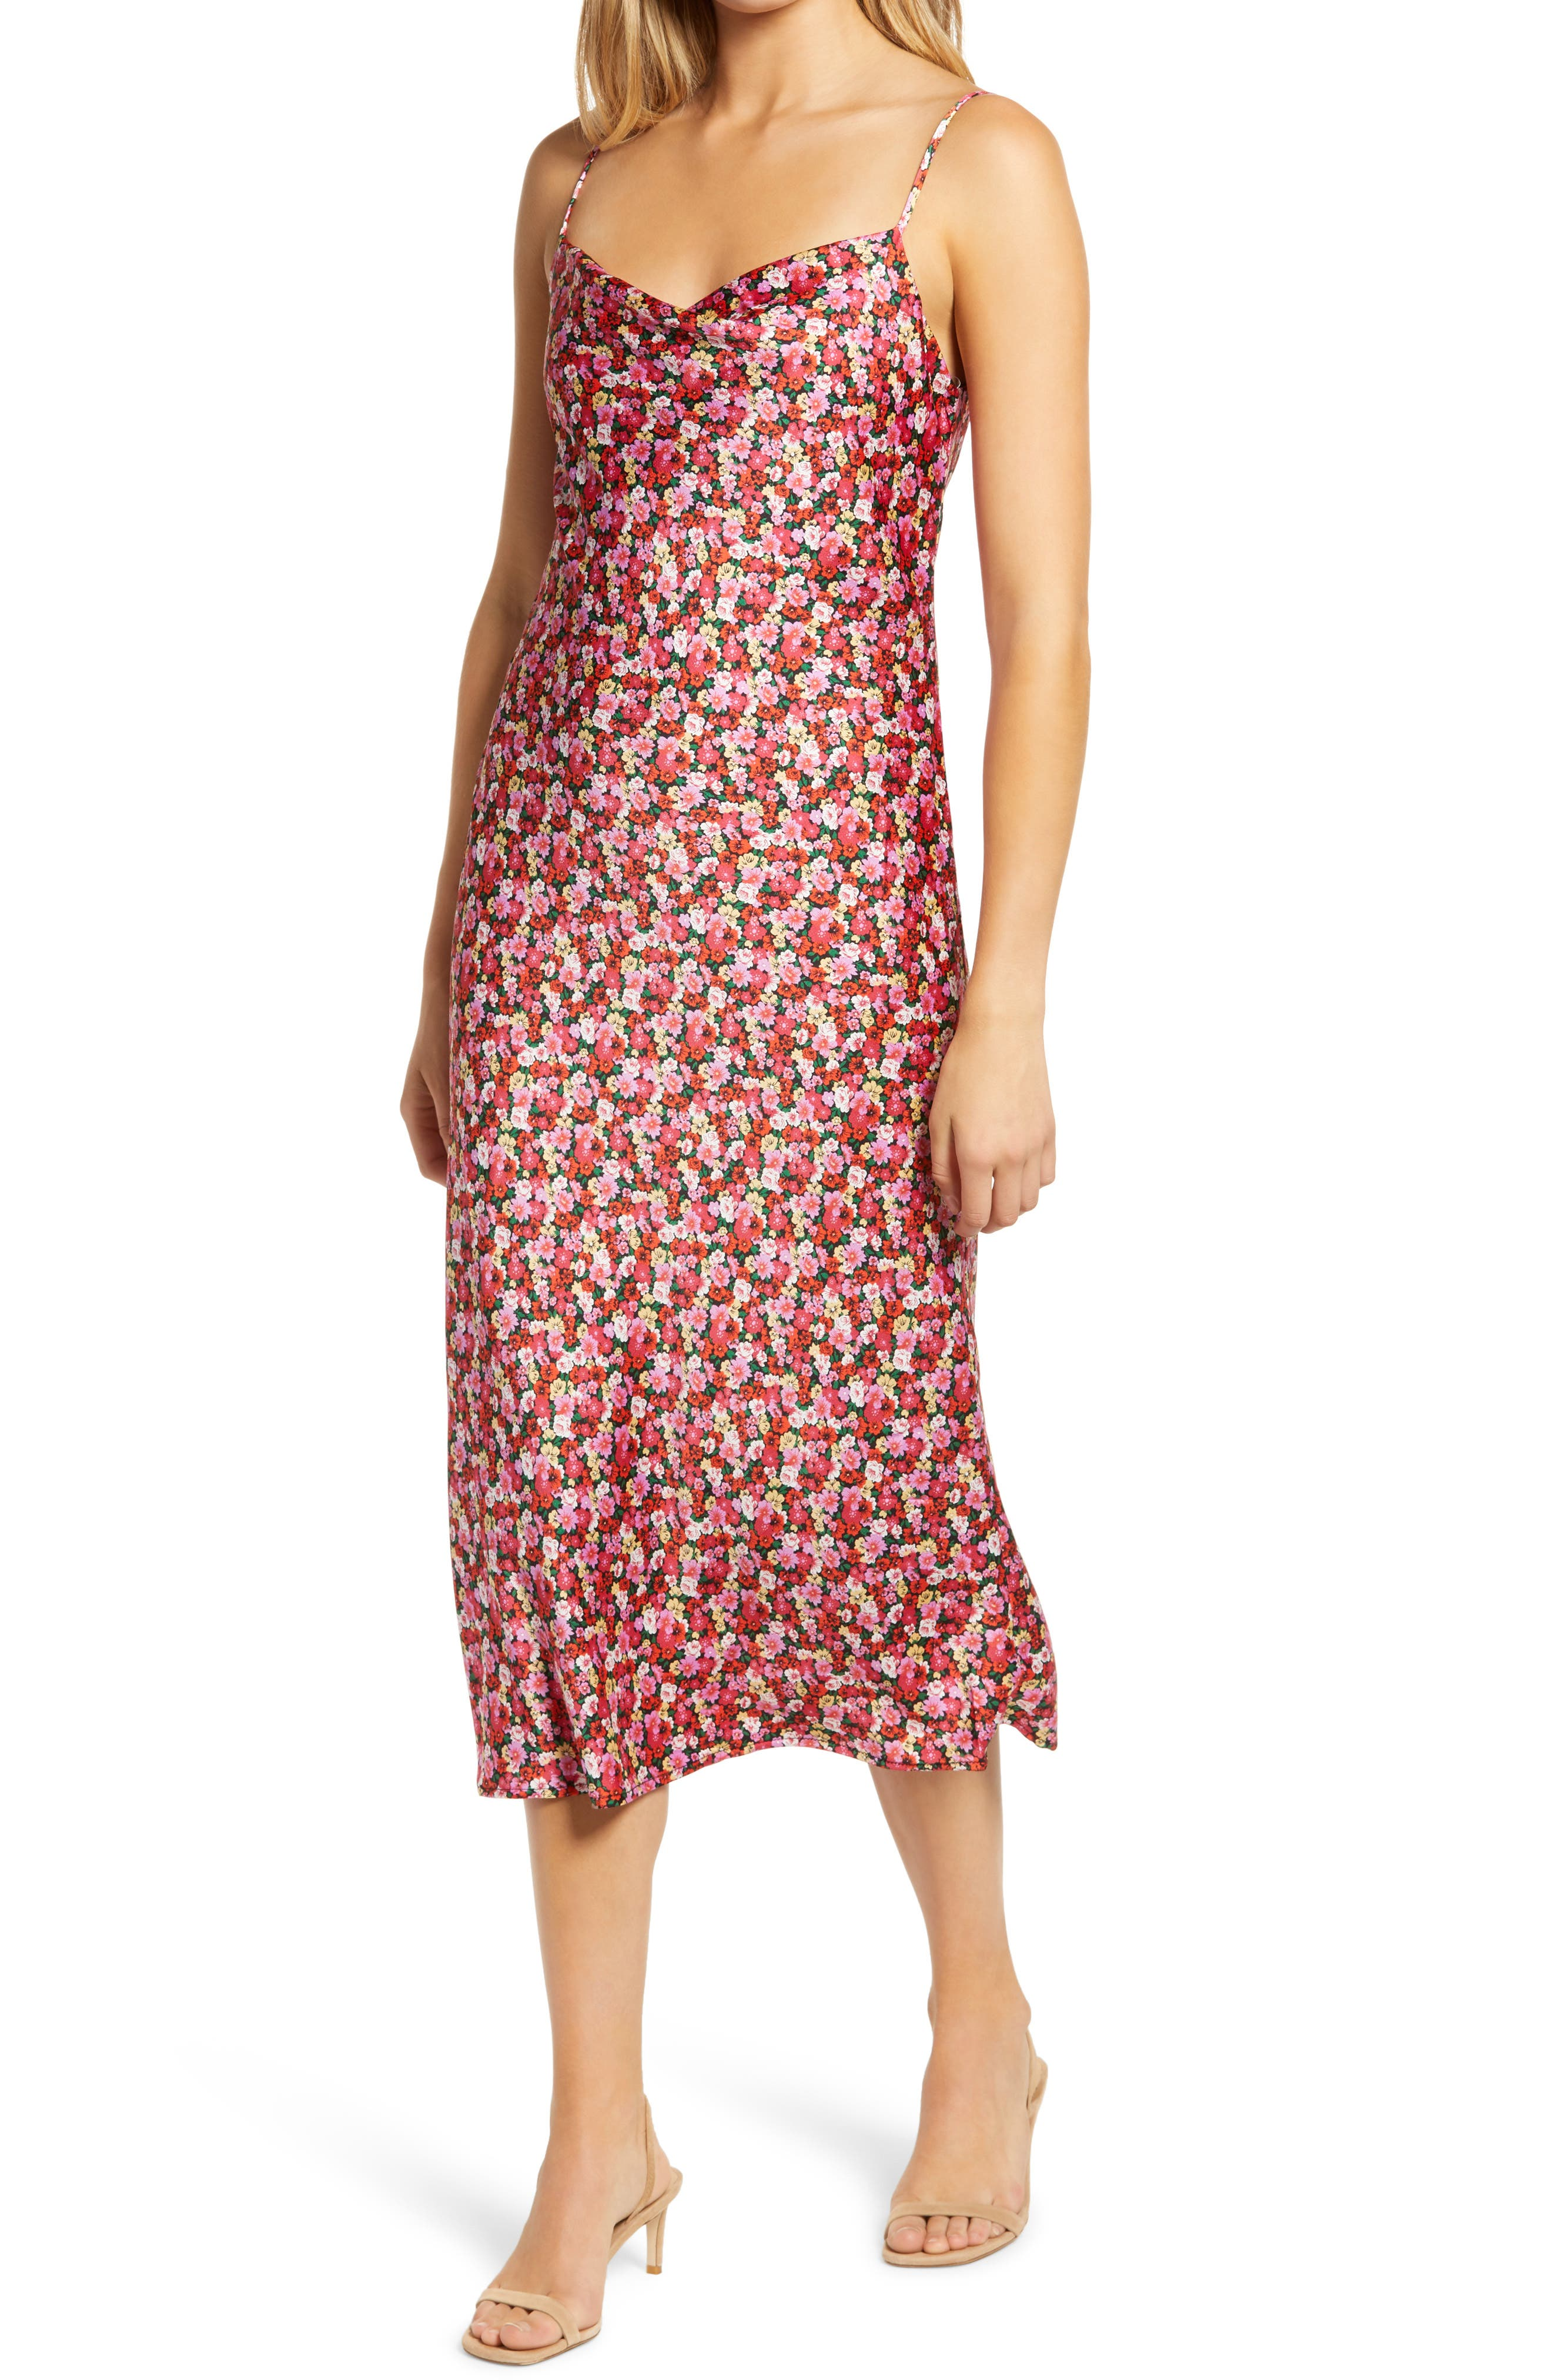 Cut from rich satin, this printed, cowl-neck slipdress enlivens any sweet occasion. Style Name: All In Favor Cowl Neck Satin Midi Dress. Style Number: 6031921. Available in stores.